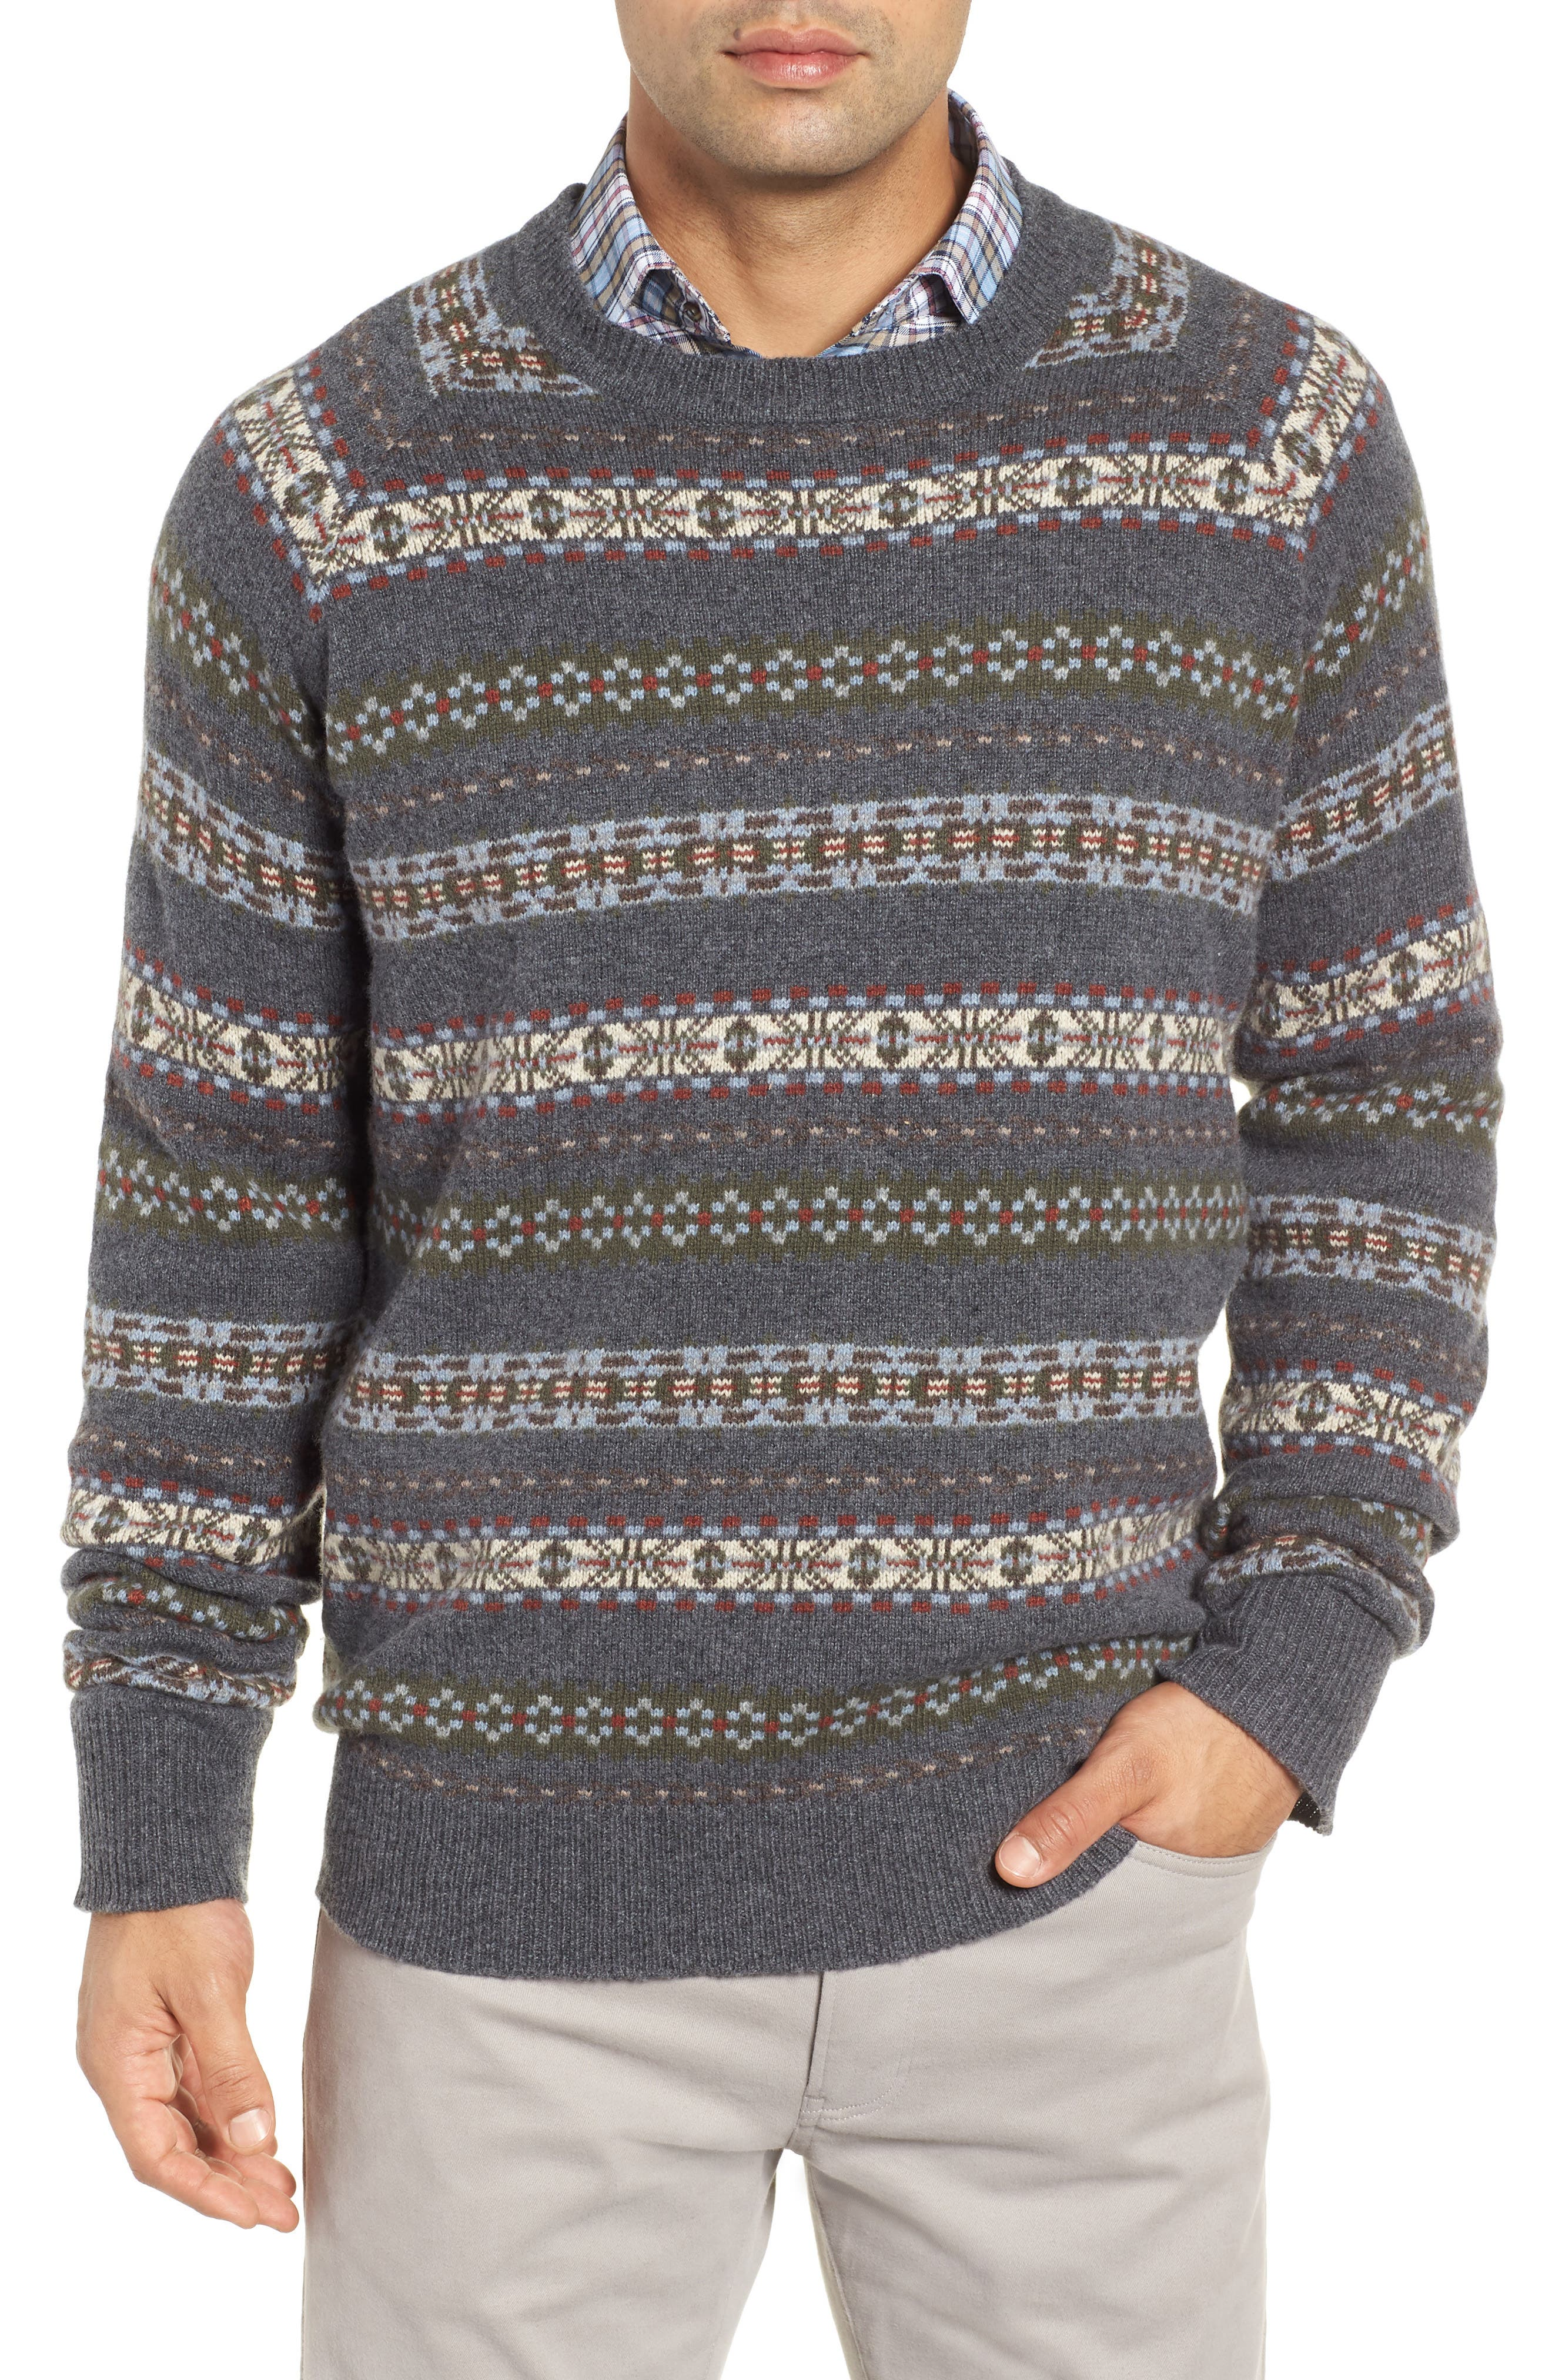 60s 70s Men's Jackets & Sweaters Mens Peter Millar Mountainside Fair Isle Crewneck Sweater $225.00 AT vintagedancer.com